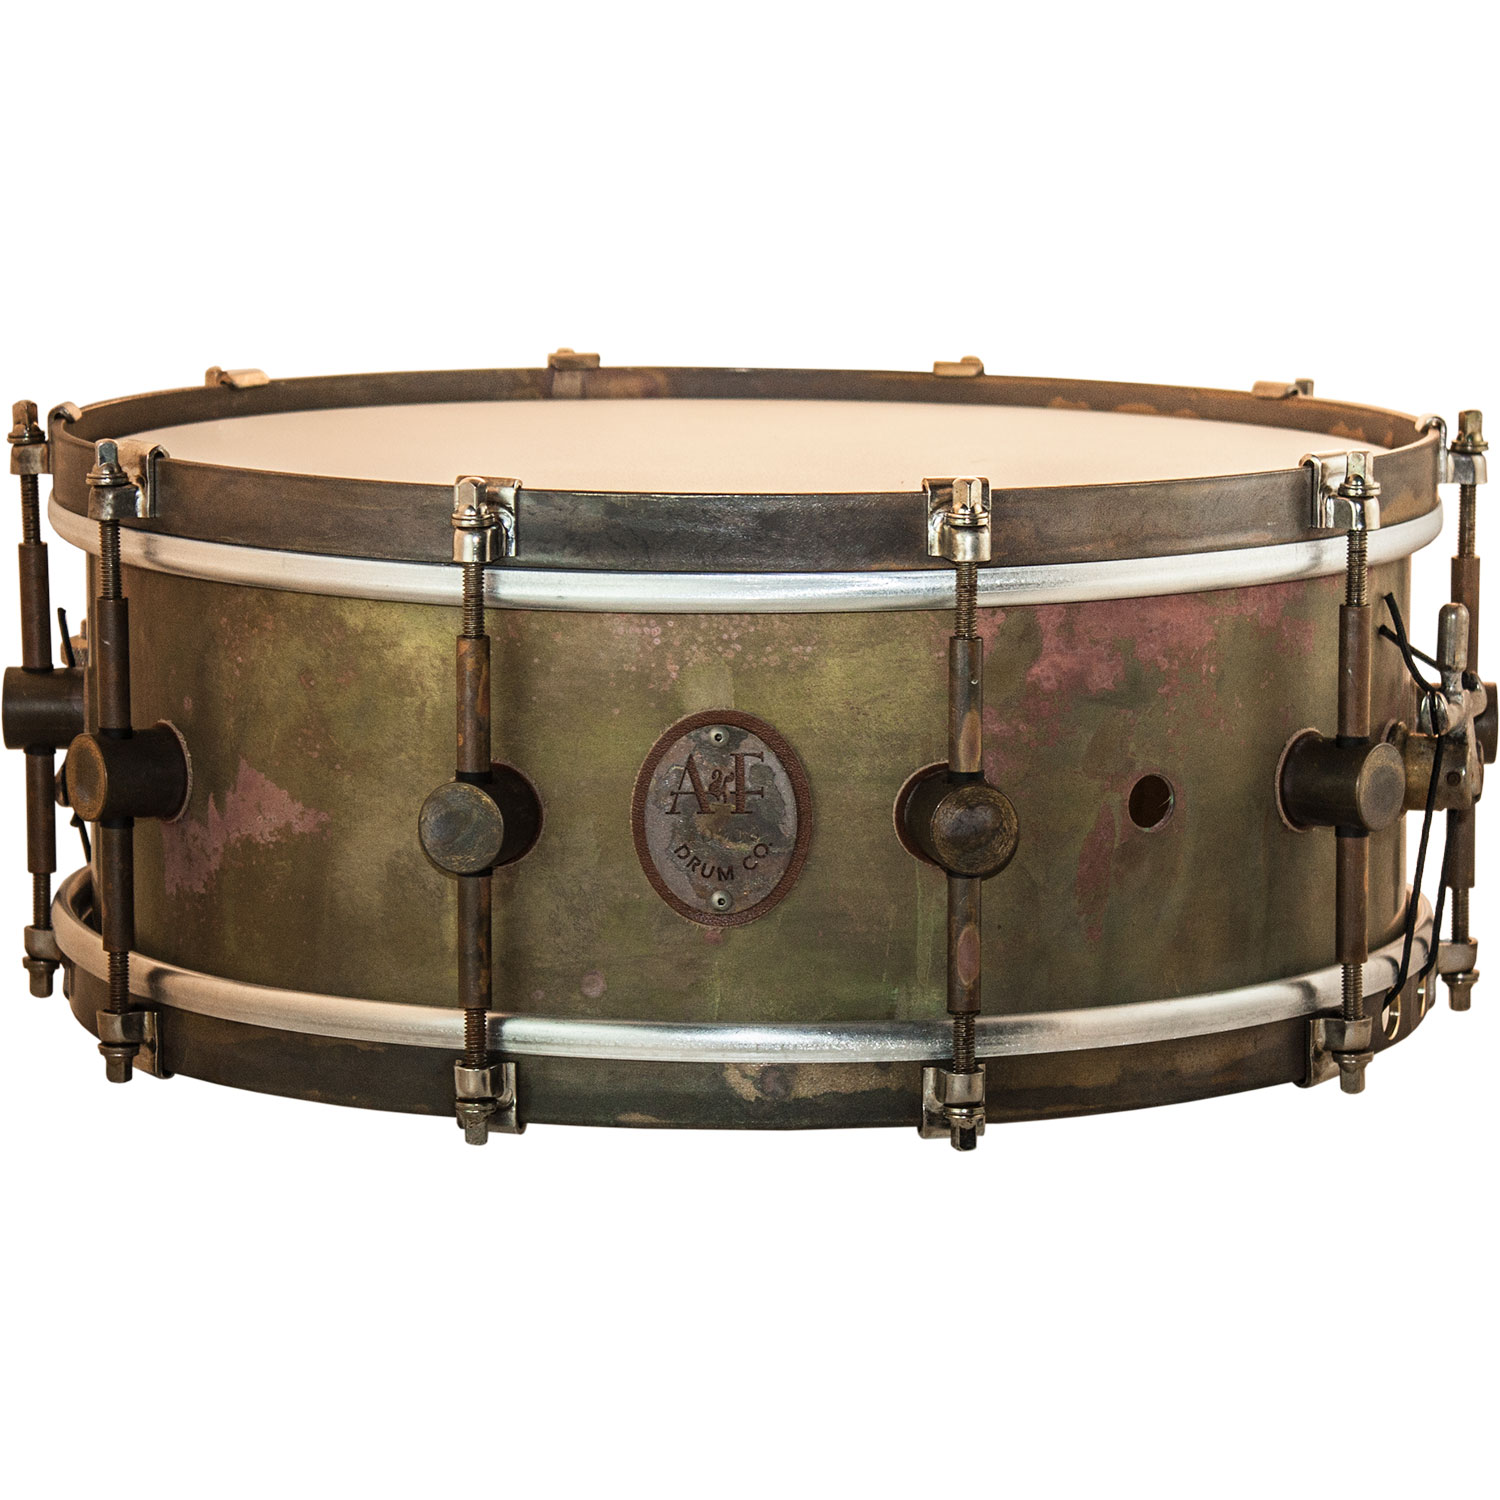 "A&F Drum Co. 5.5"" x 14"" Standard Snare Drum"